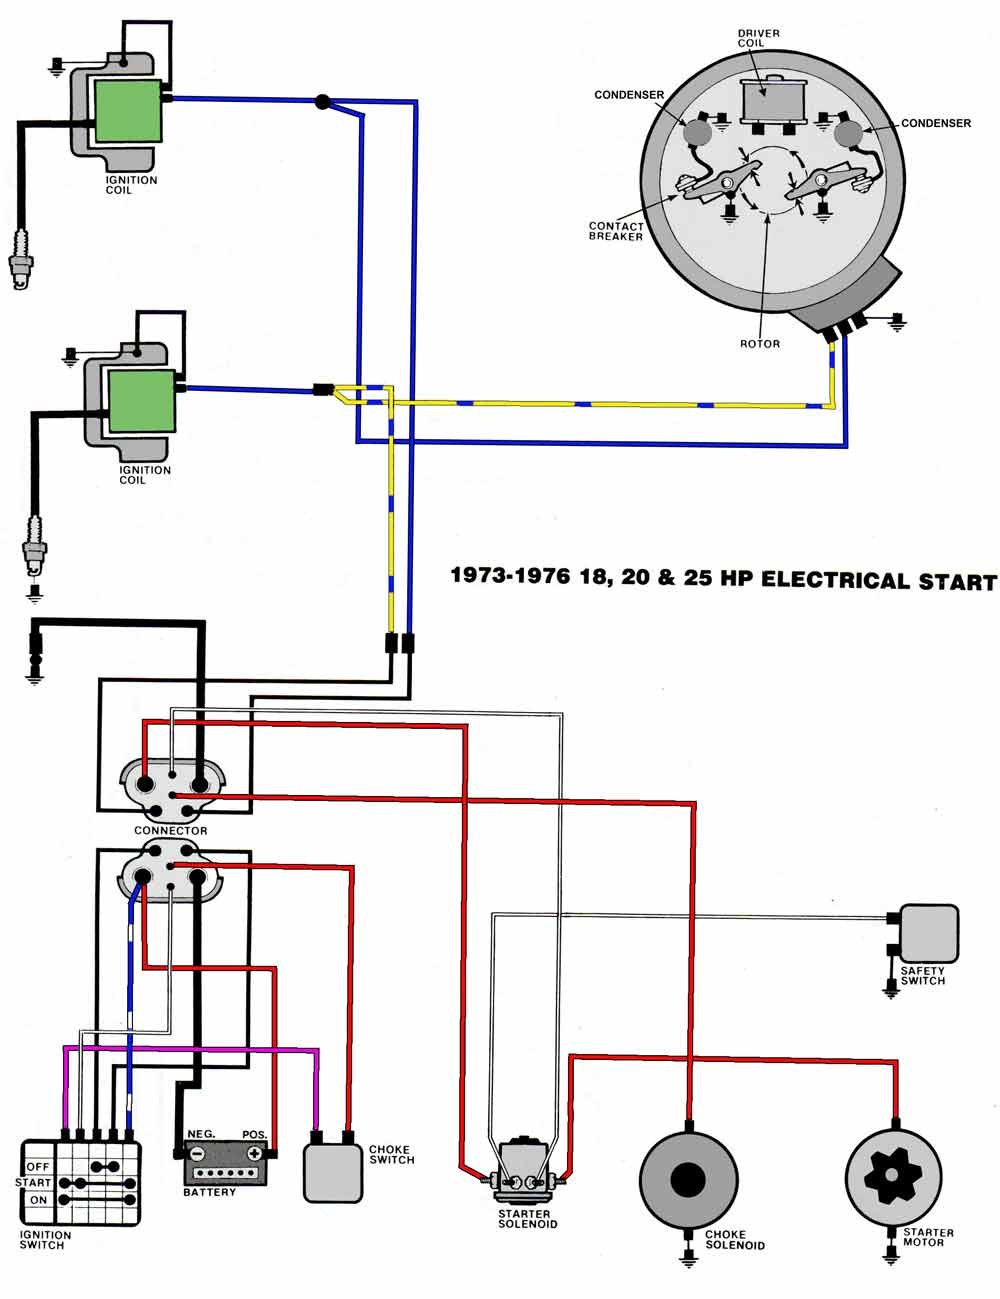 WRG-7170] Wiring Diagram For 25 Hp Mercury Outboard